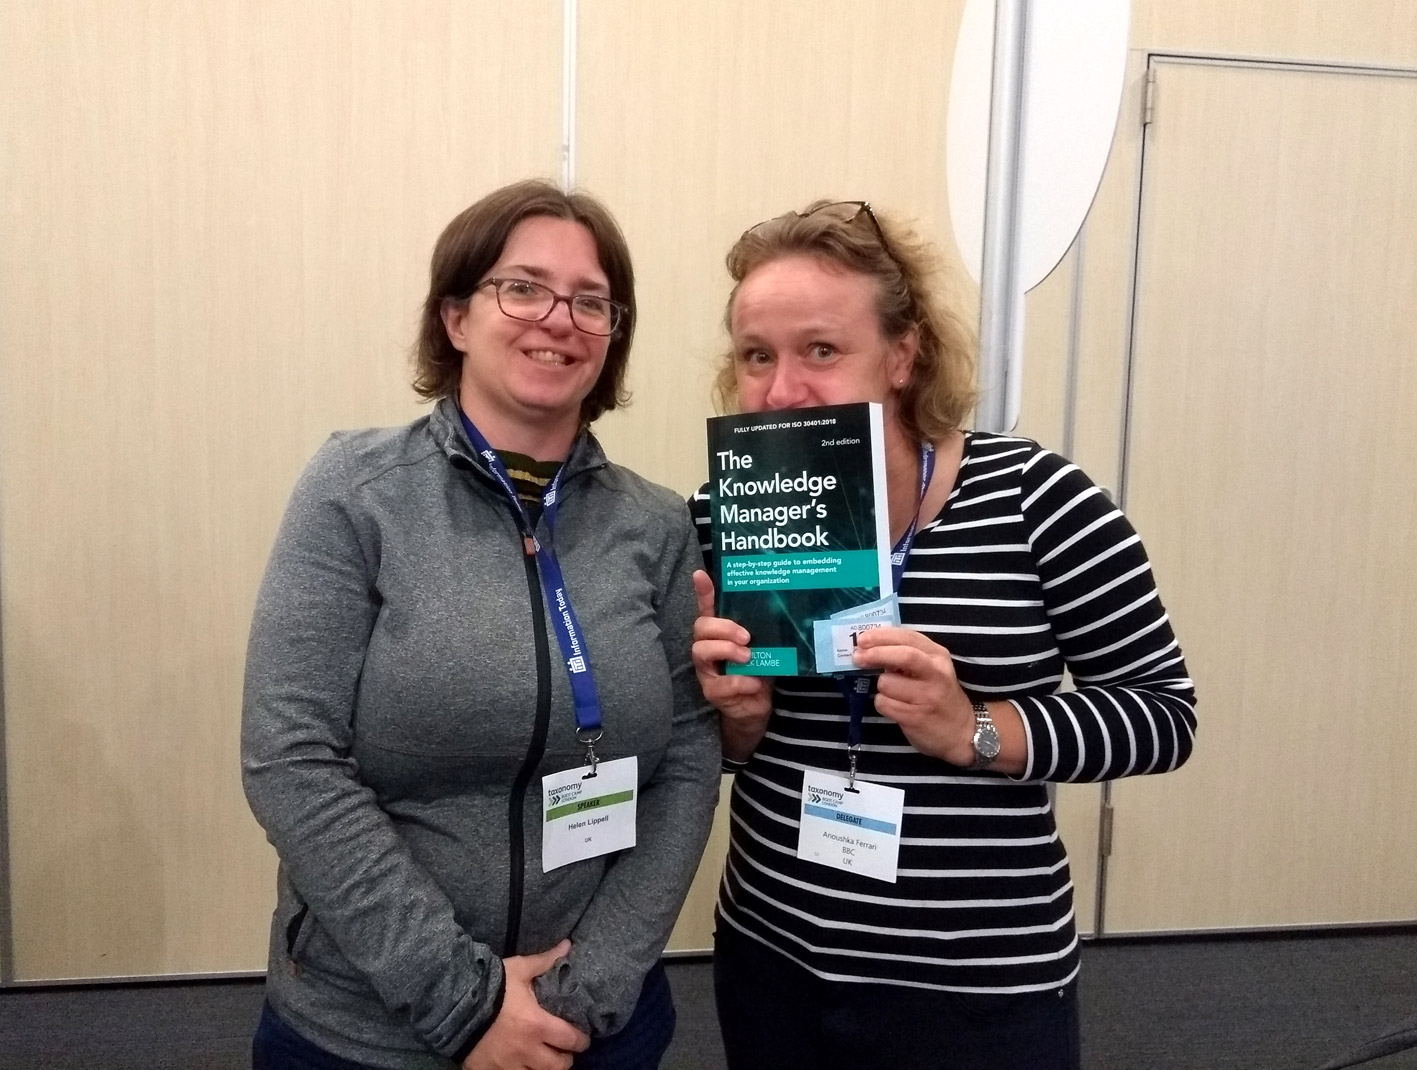 Anoushka Ferrari with Helen Lippell, organiser of the Taxonomy Bootcamp